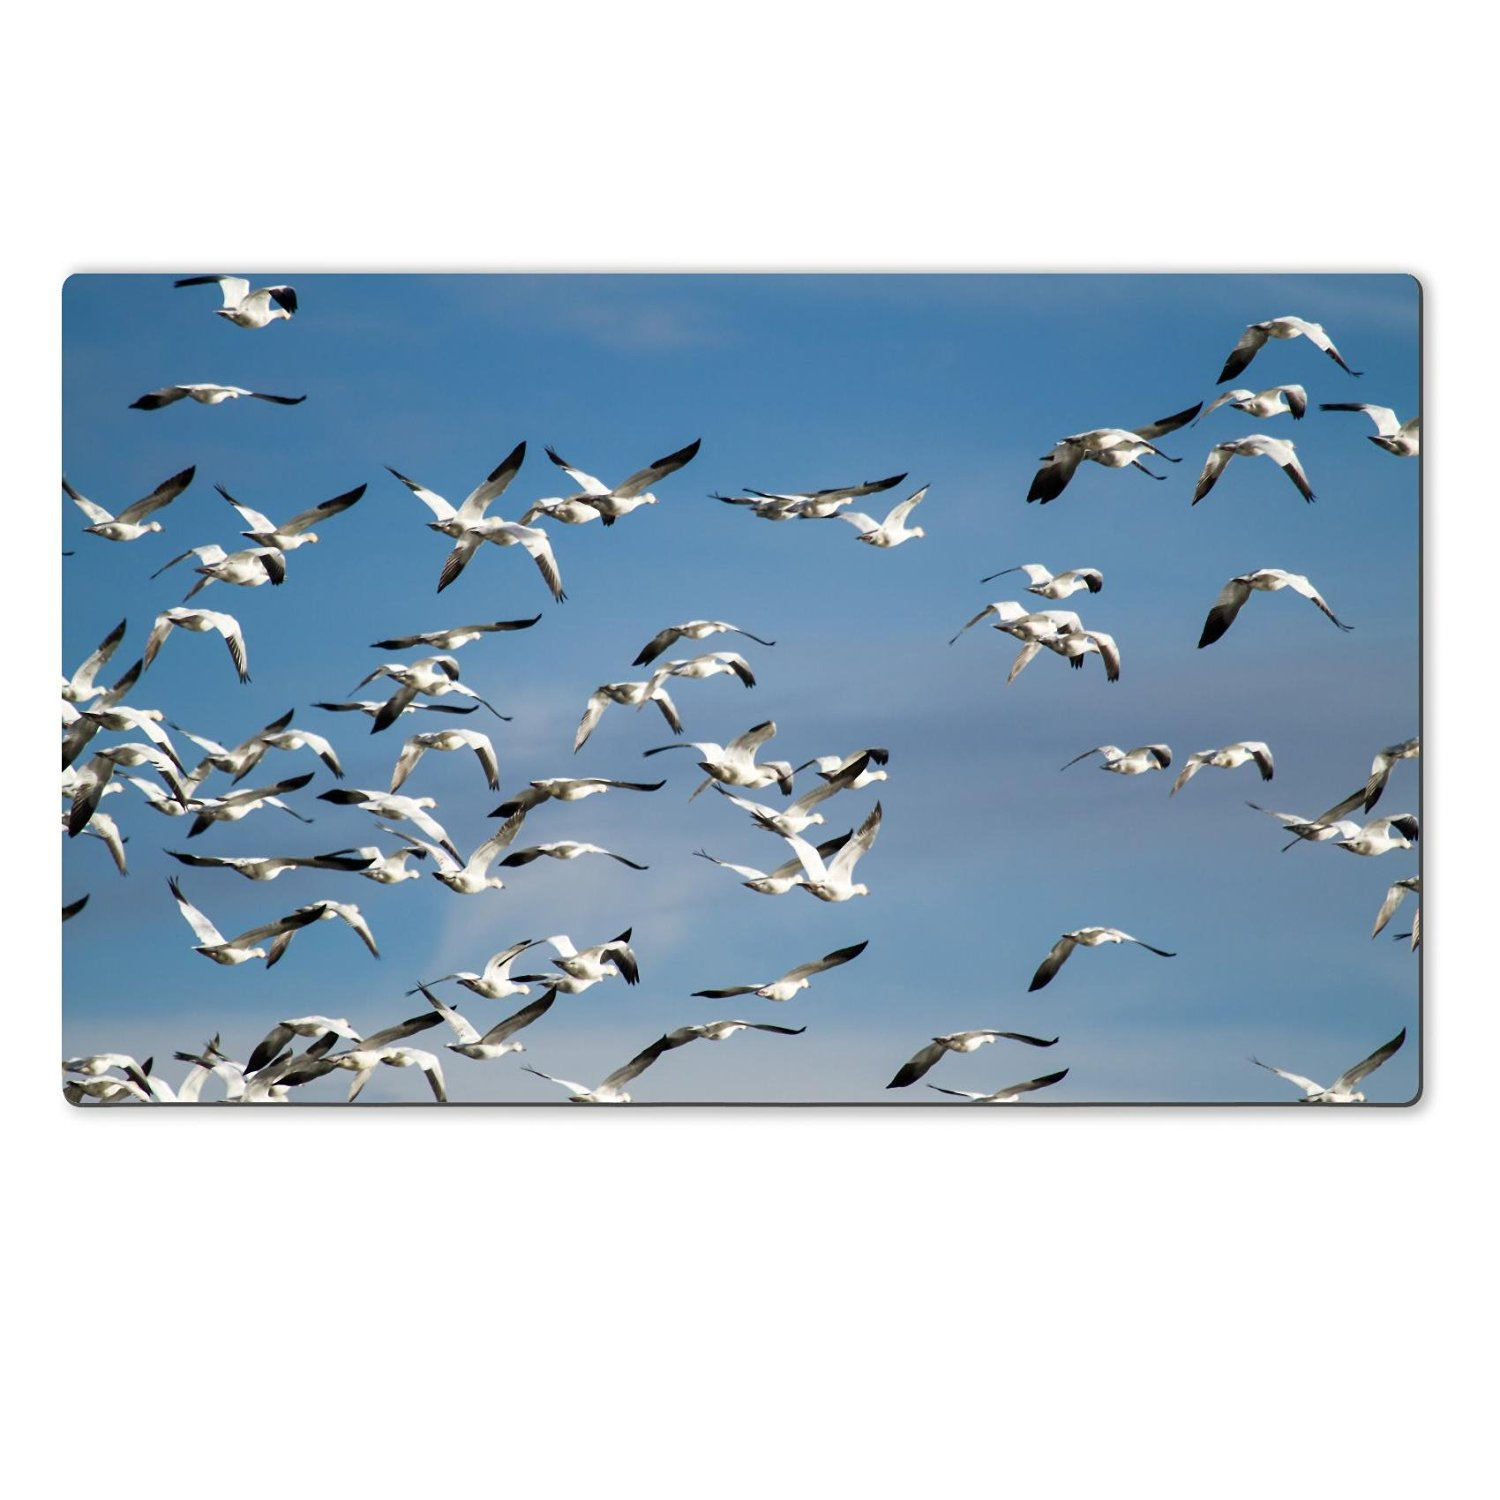 Luxlady Large Table Mat Natural Rubber Material Image 24748367312